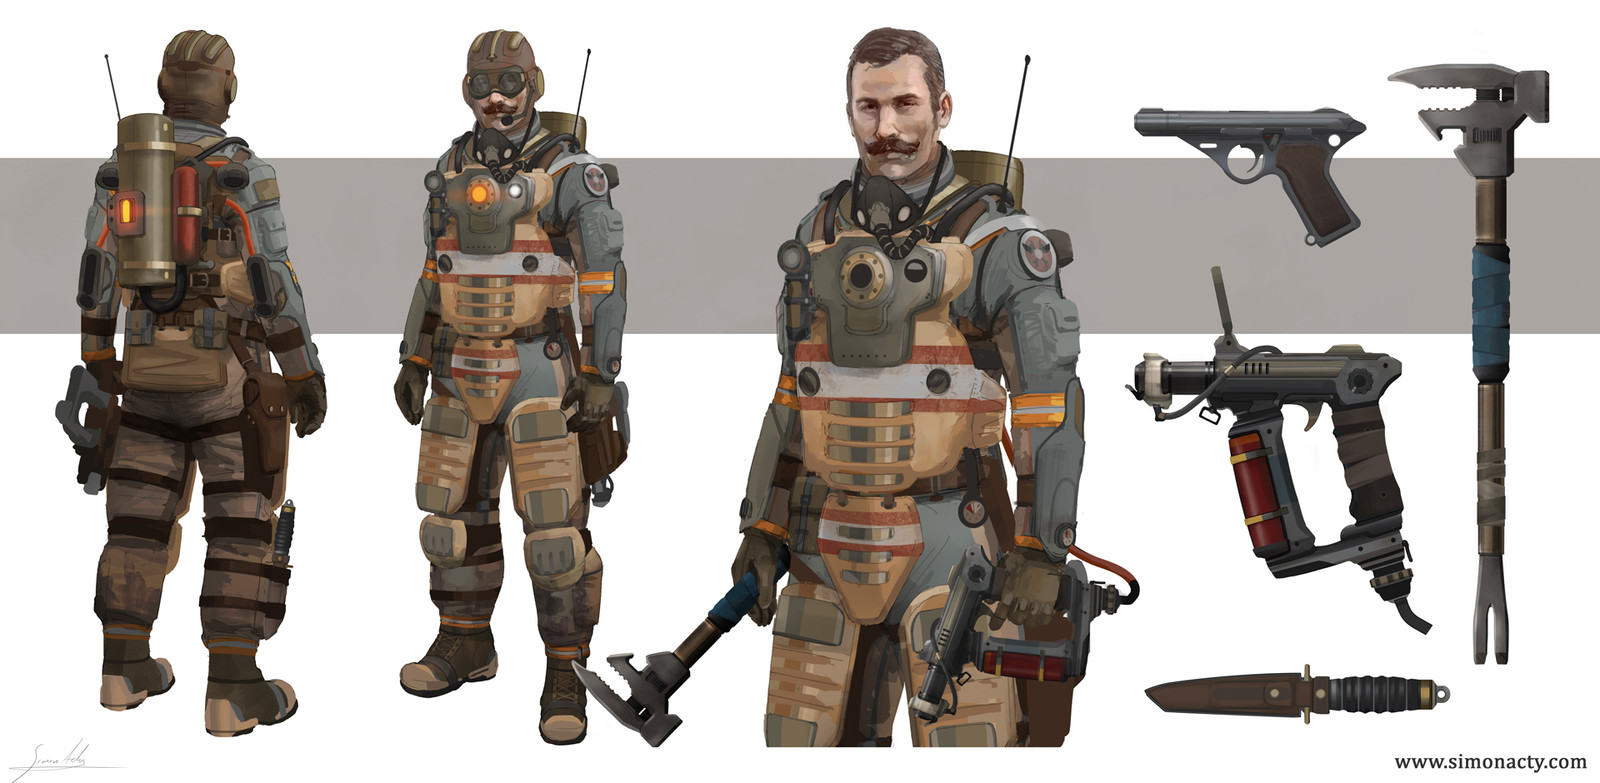 Sky rigger character concepts